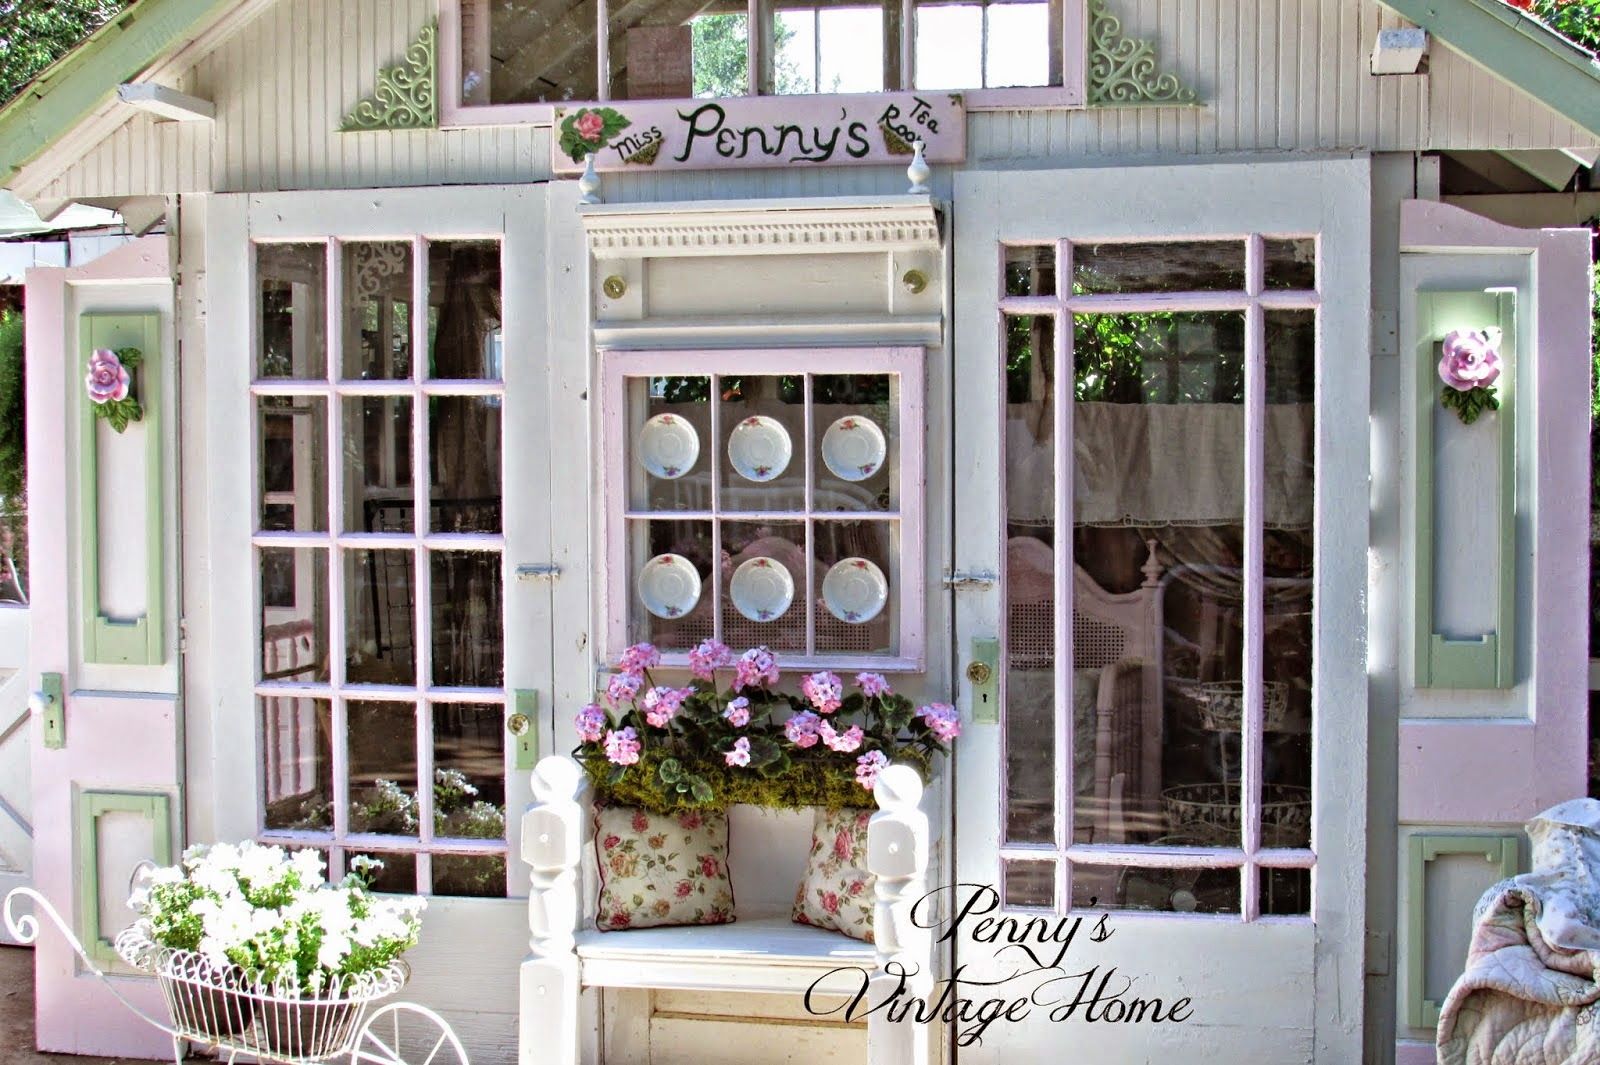 Pennys Treasures shared her Potting Shed Redo featured at One More Time Eventts.com